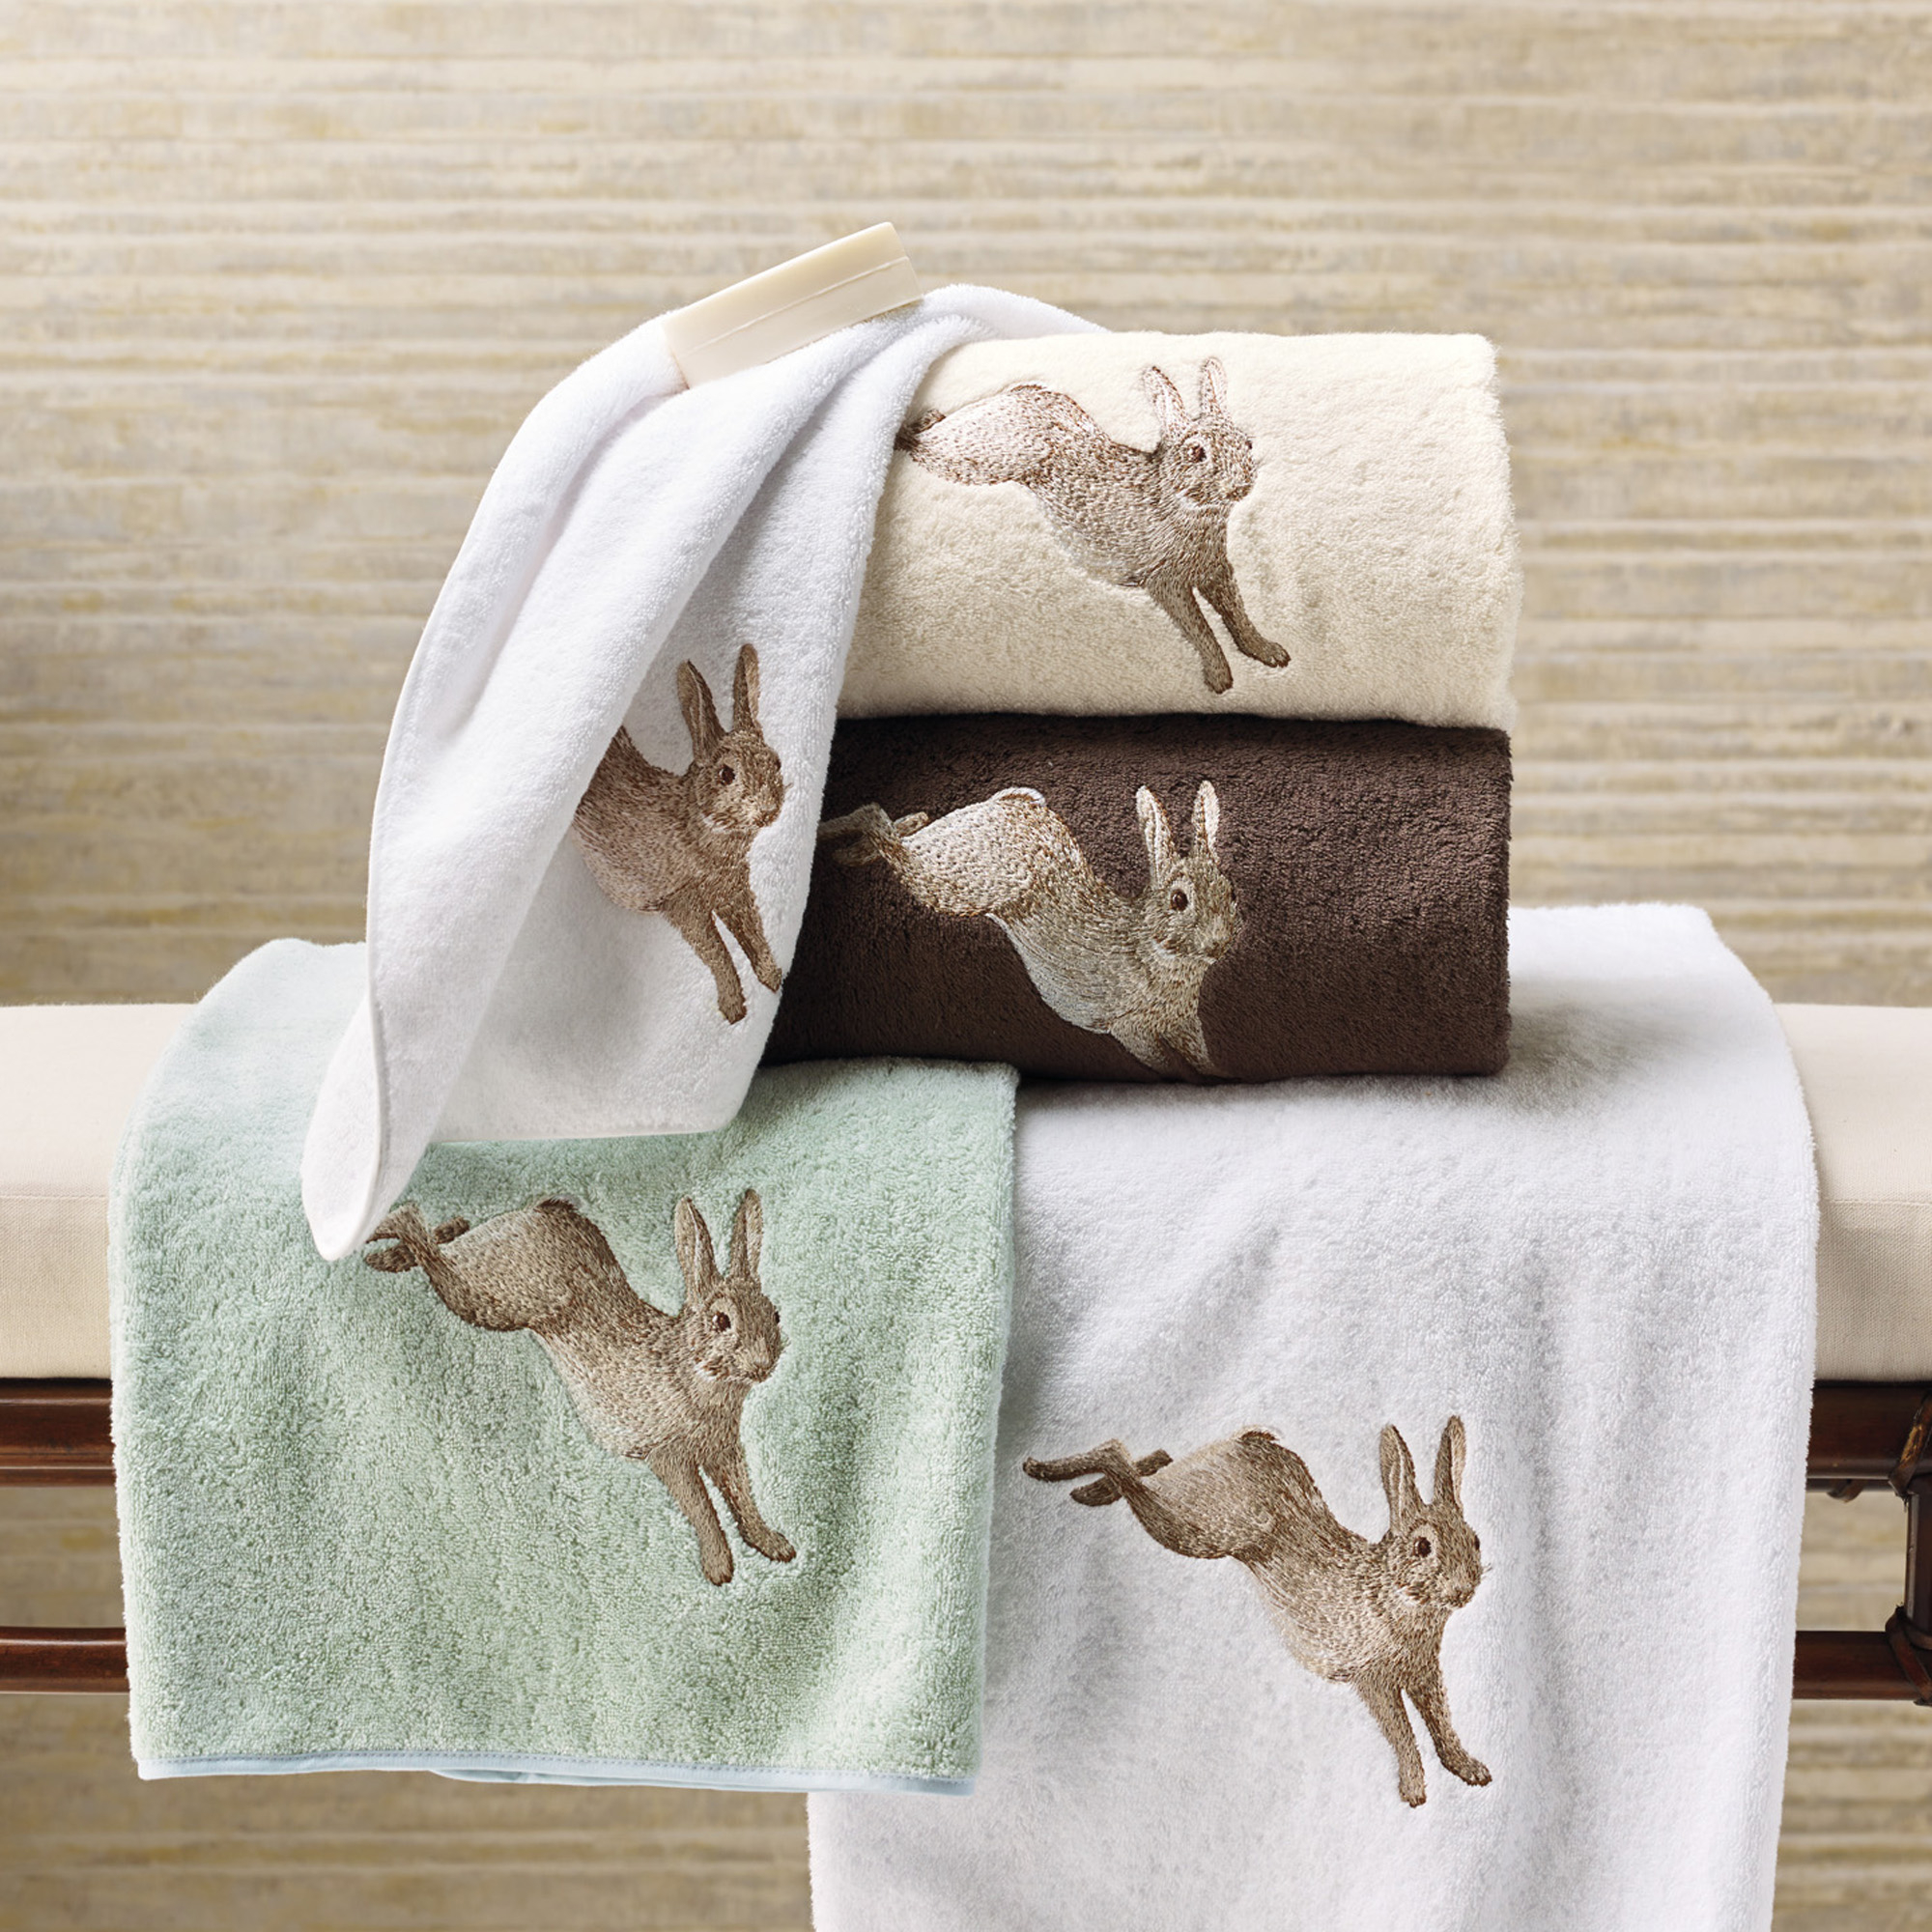 Embroidered Rabbit Towels